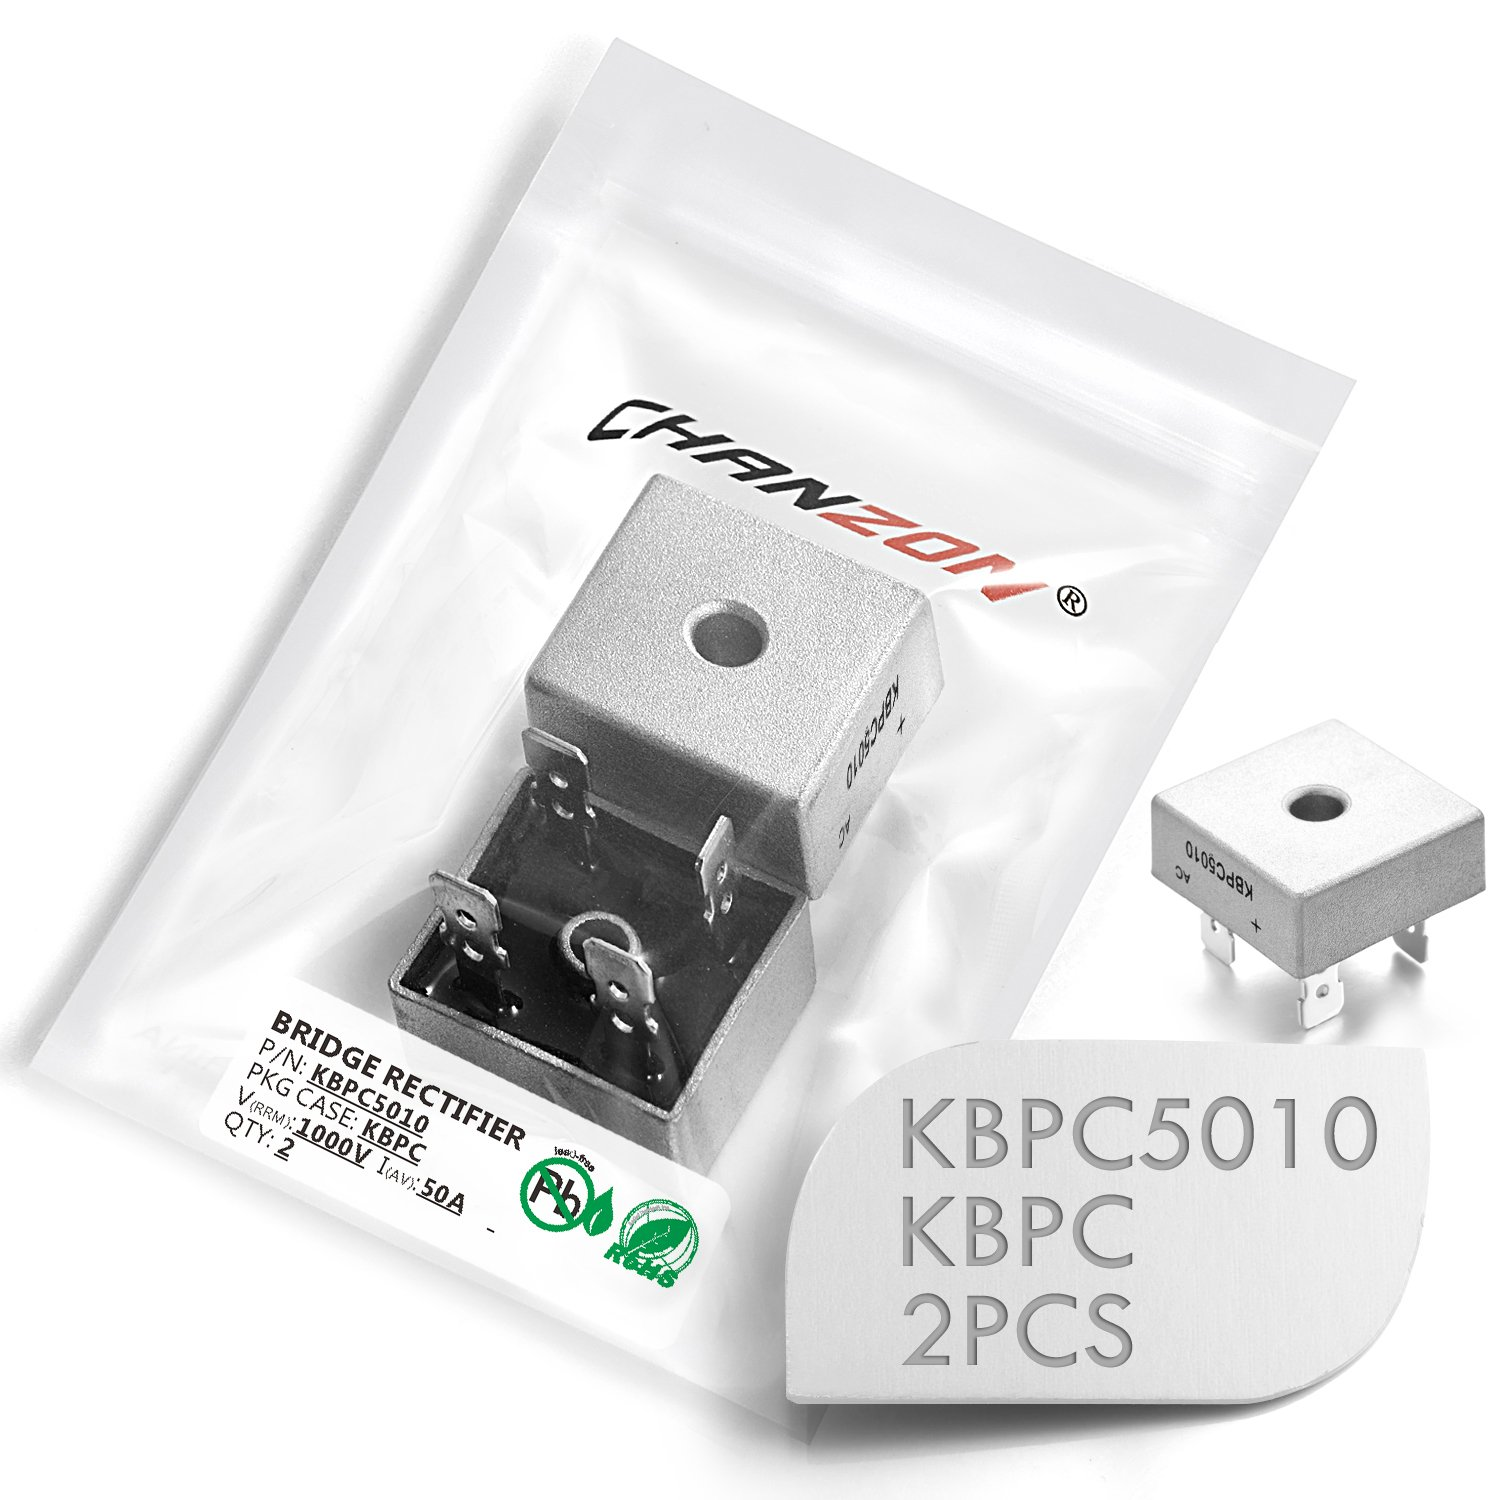 (Pack of 2 Pieces) Chanzon KBPC5010 Bridge Rectifier Diode 50A 1000V KBPC Single Phase, Full Wave 50 Amp 1000 Volt Electronic Silicon Diodes